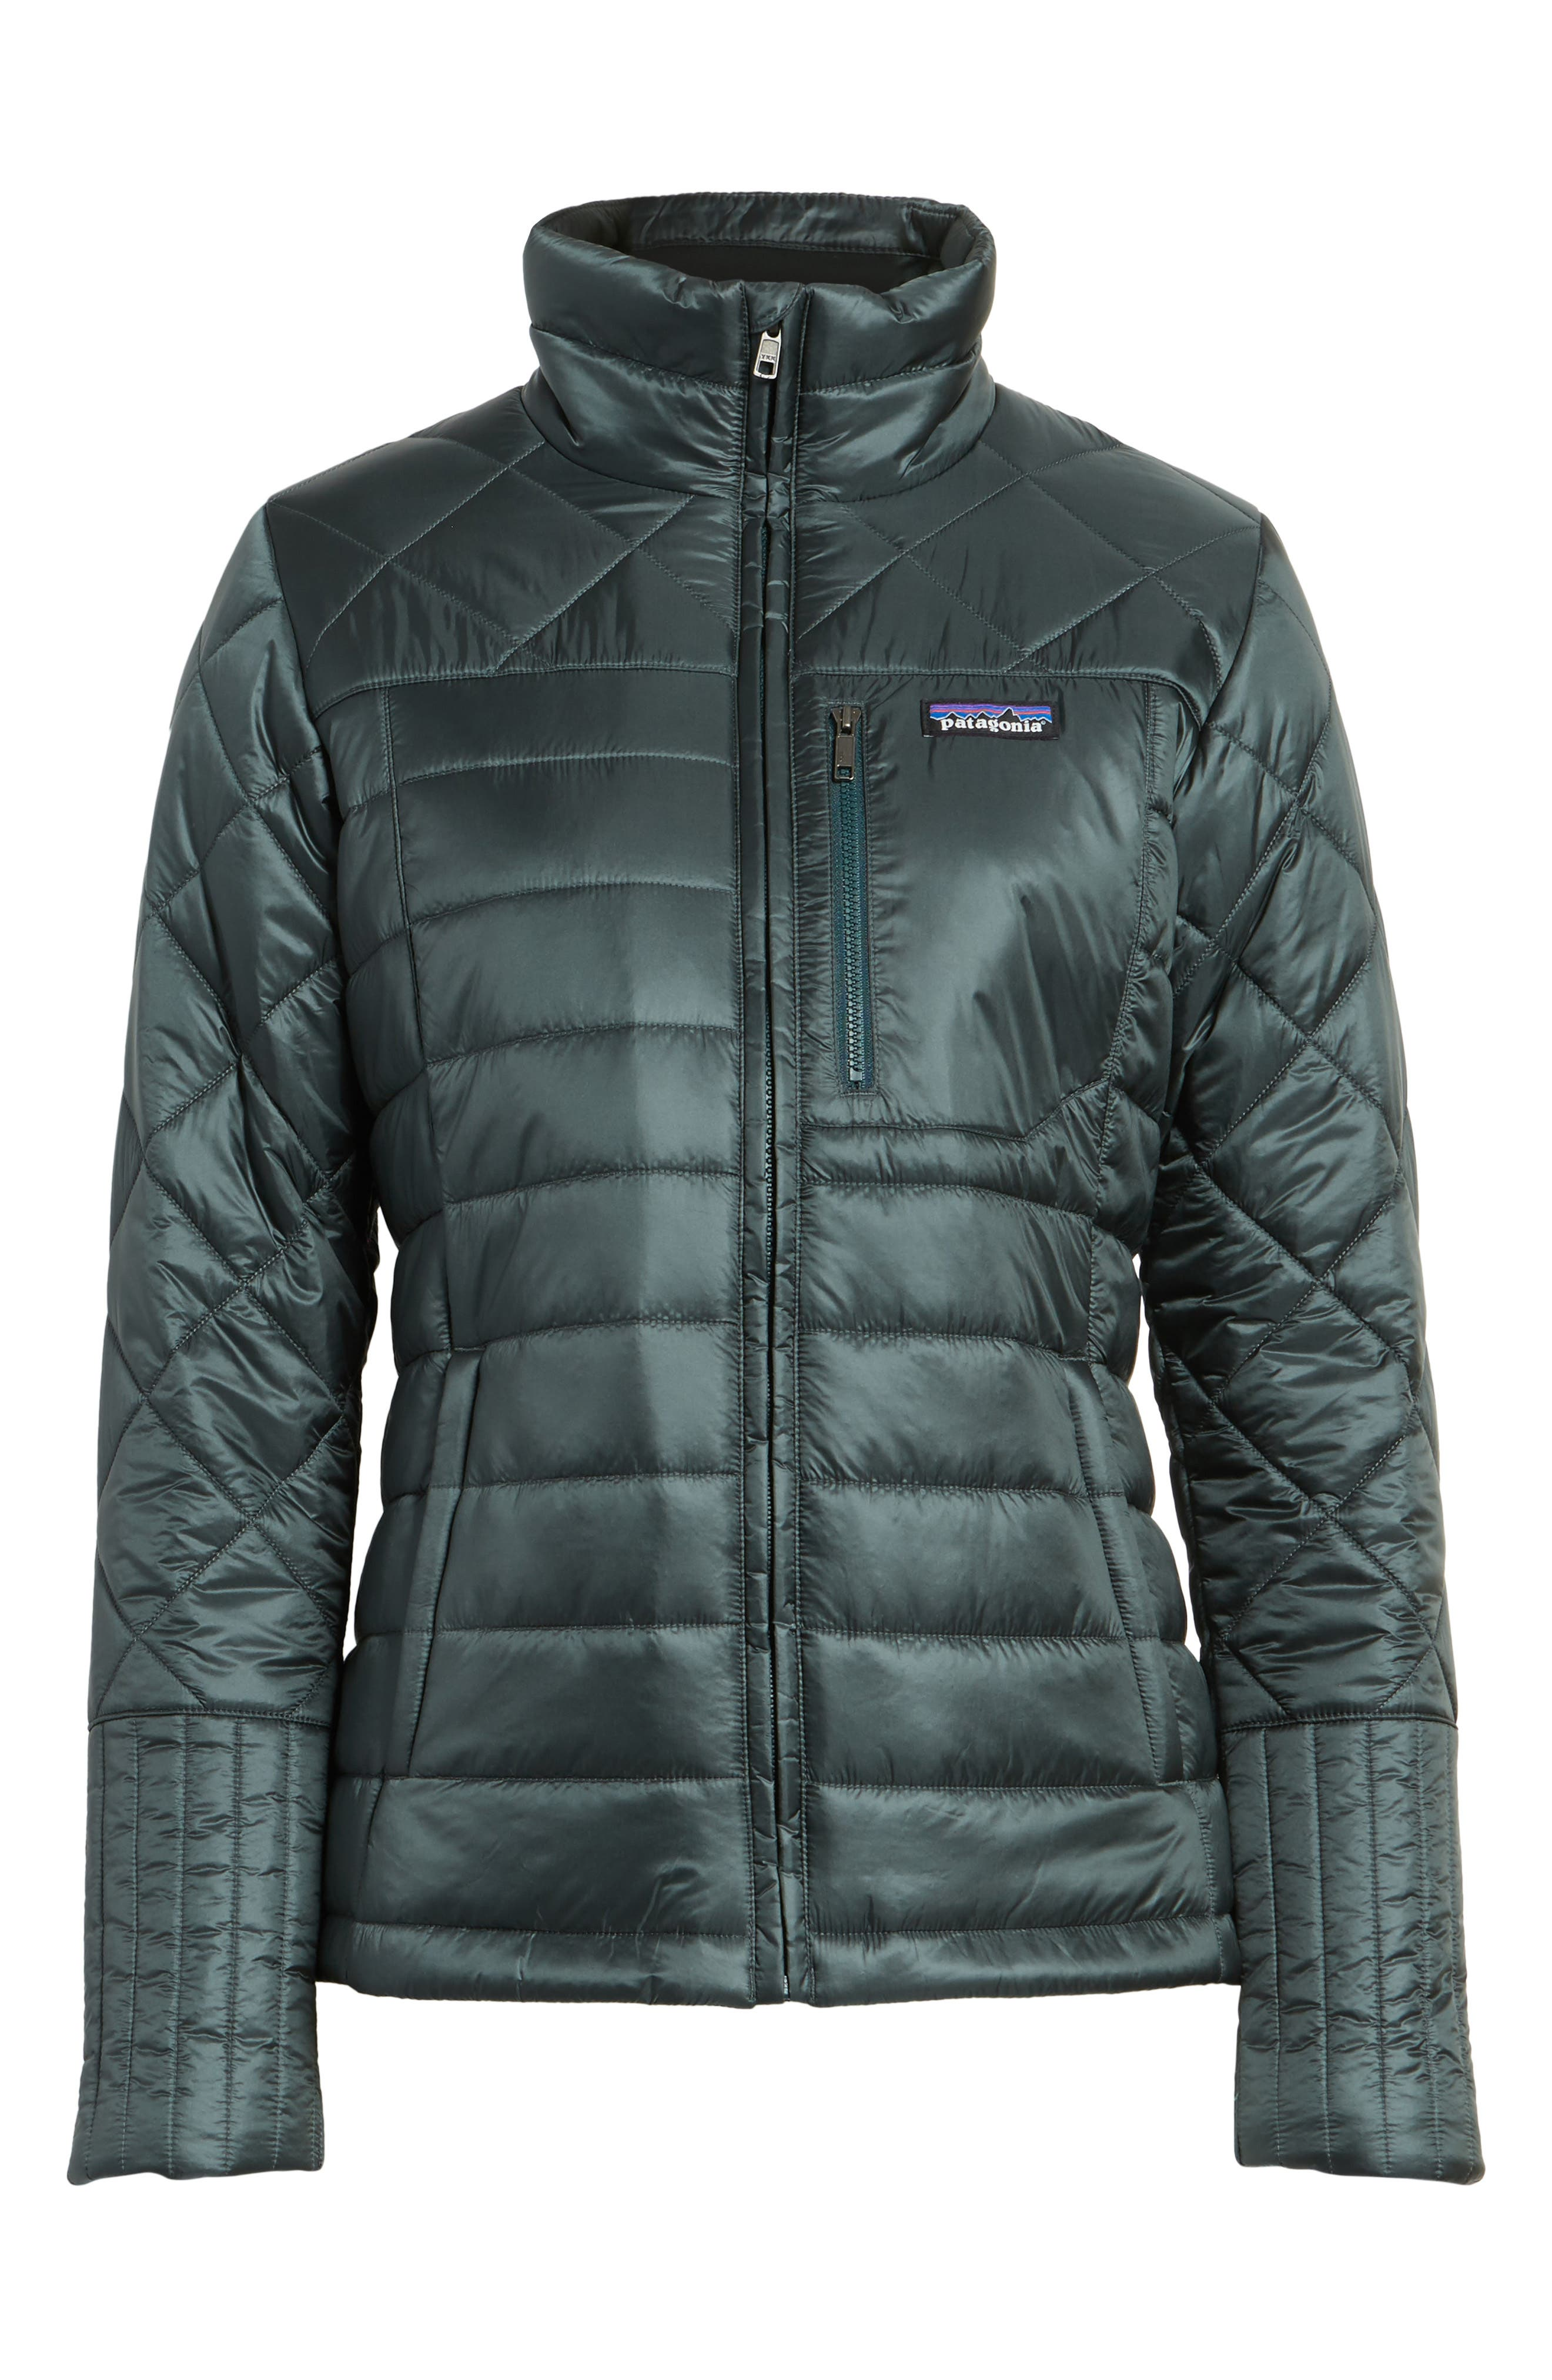 Alternate Image 1 Selected - Patagonia Radalie Water Repellent Thermogreen-Insulated Jacket